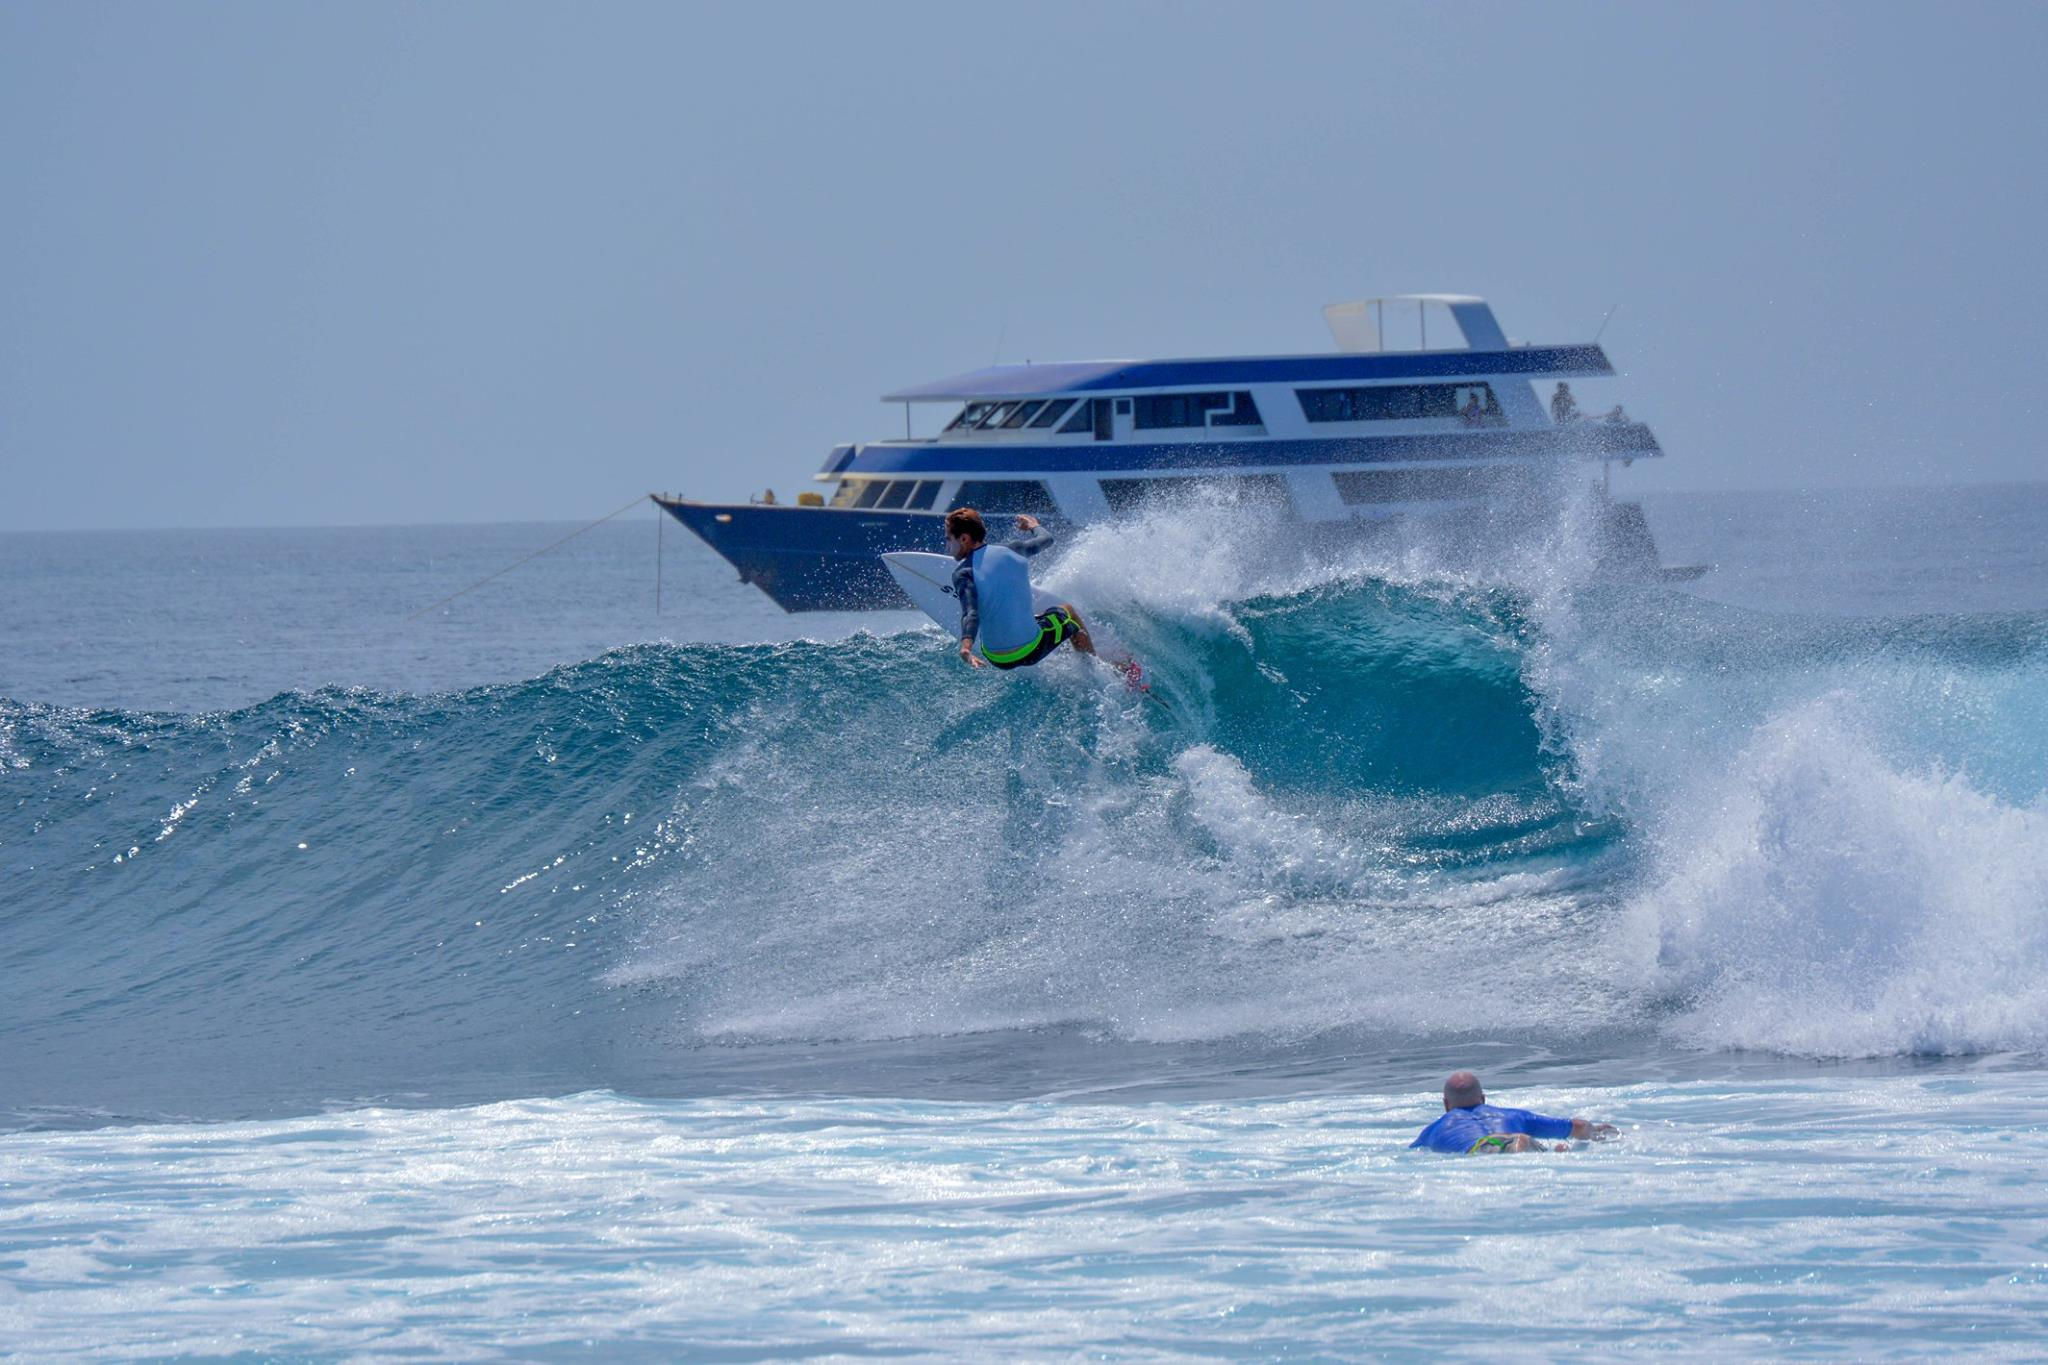 Solo surfing on Blue Star